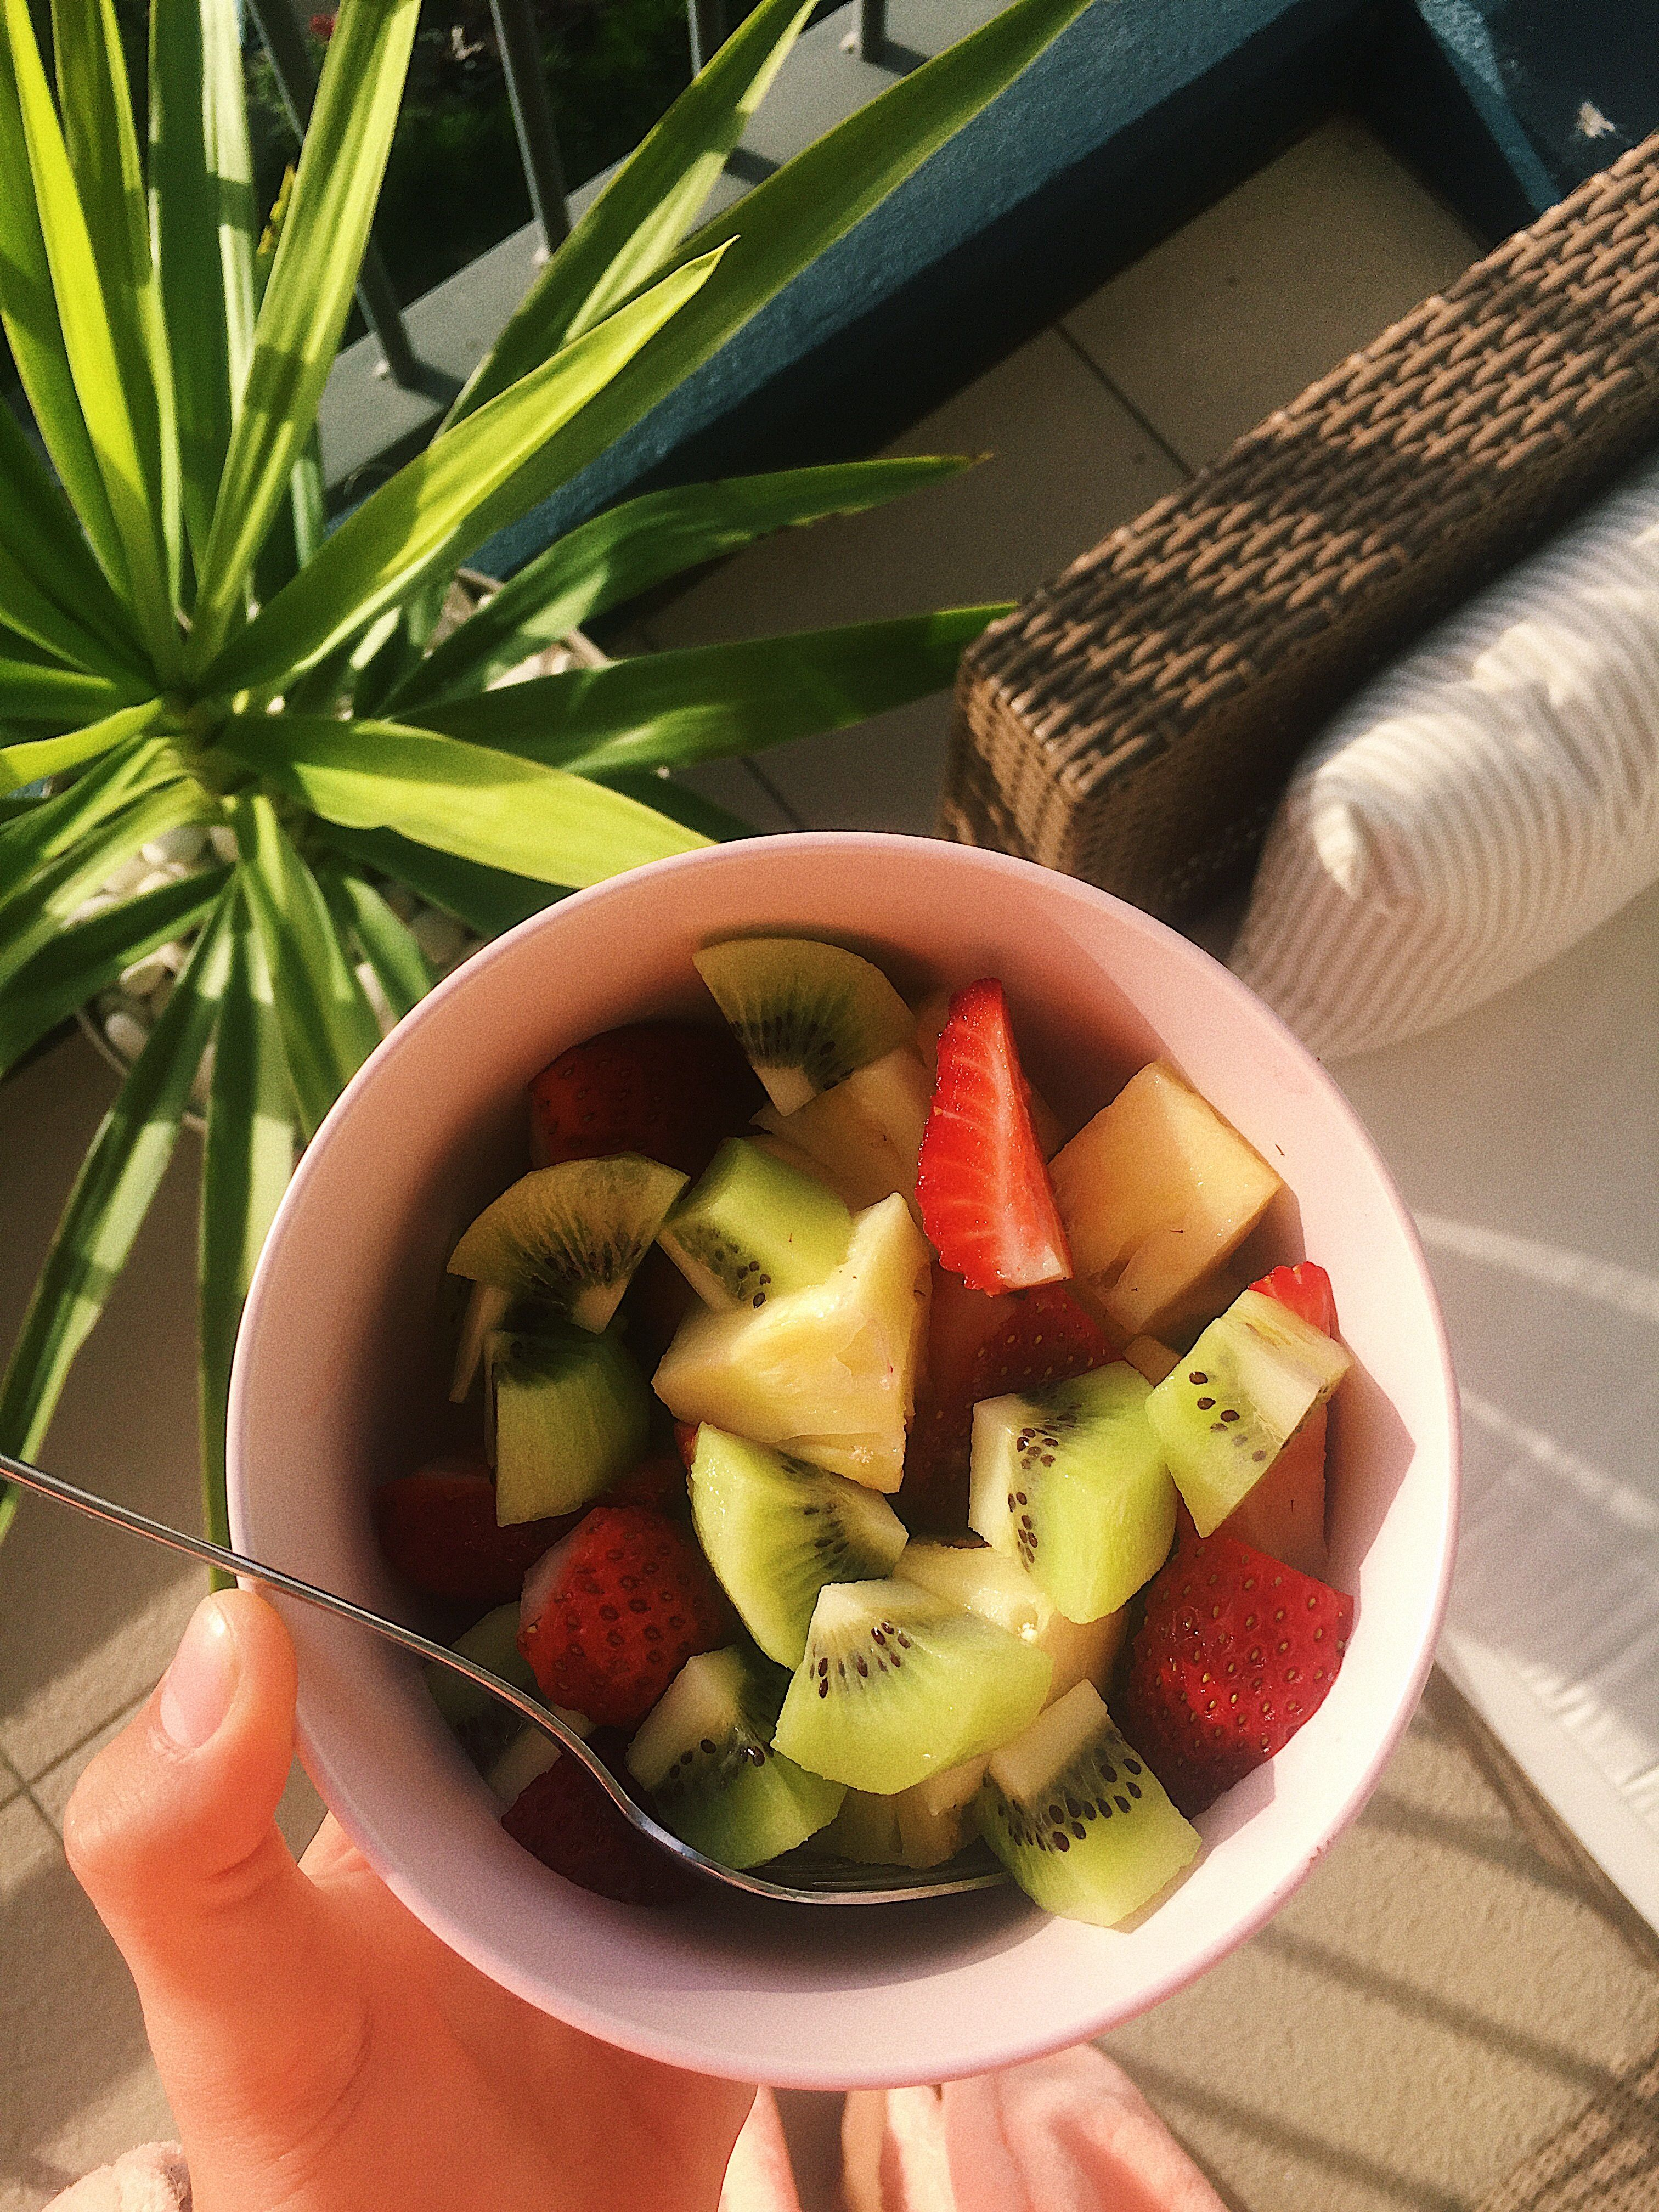 Pin by on Food/drinks Healty food, Workout food, Healthy